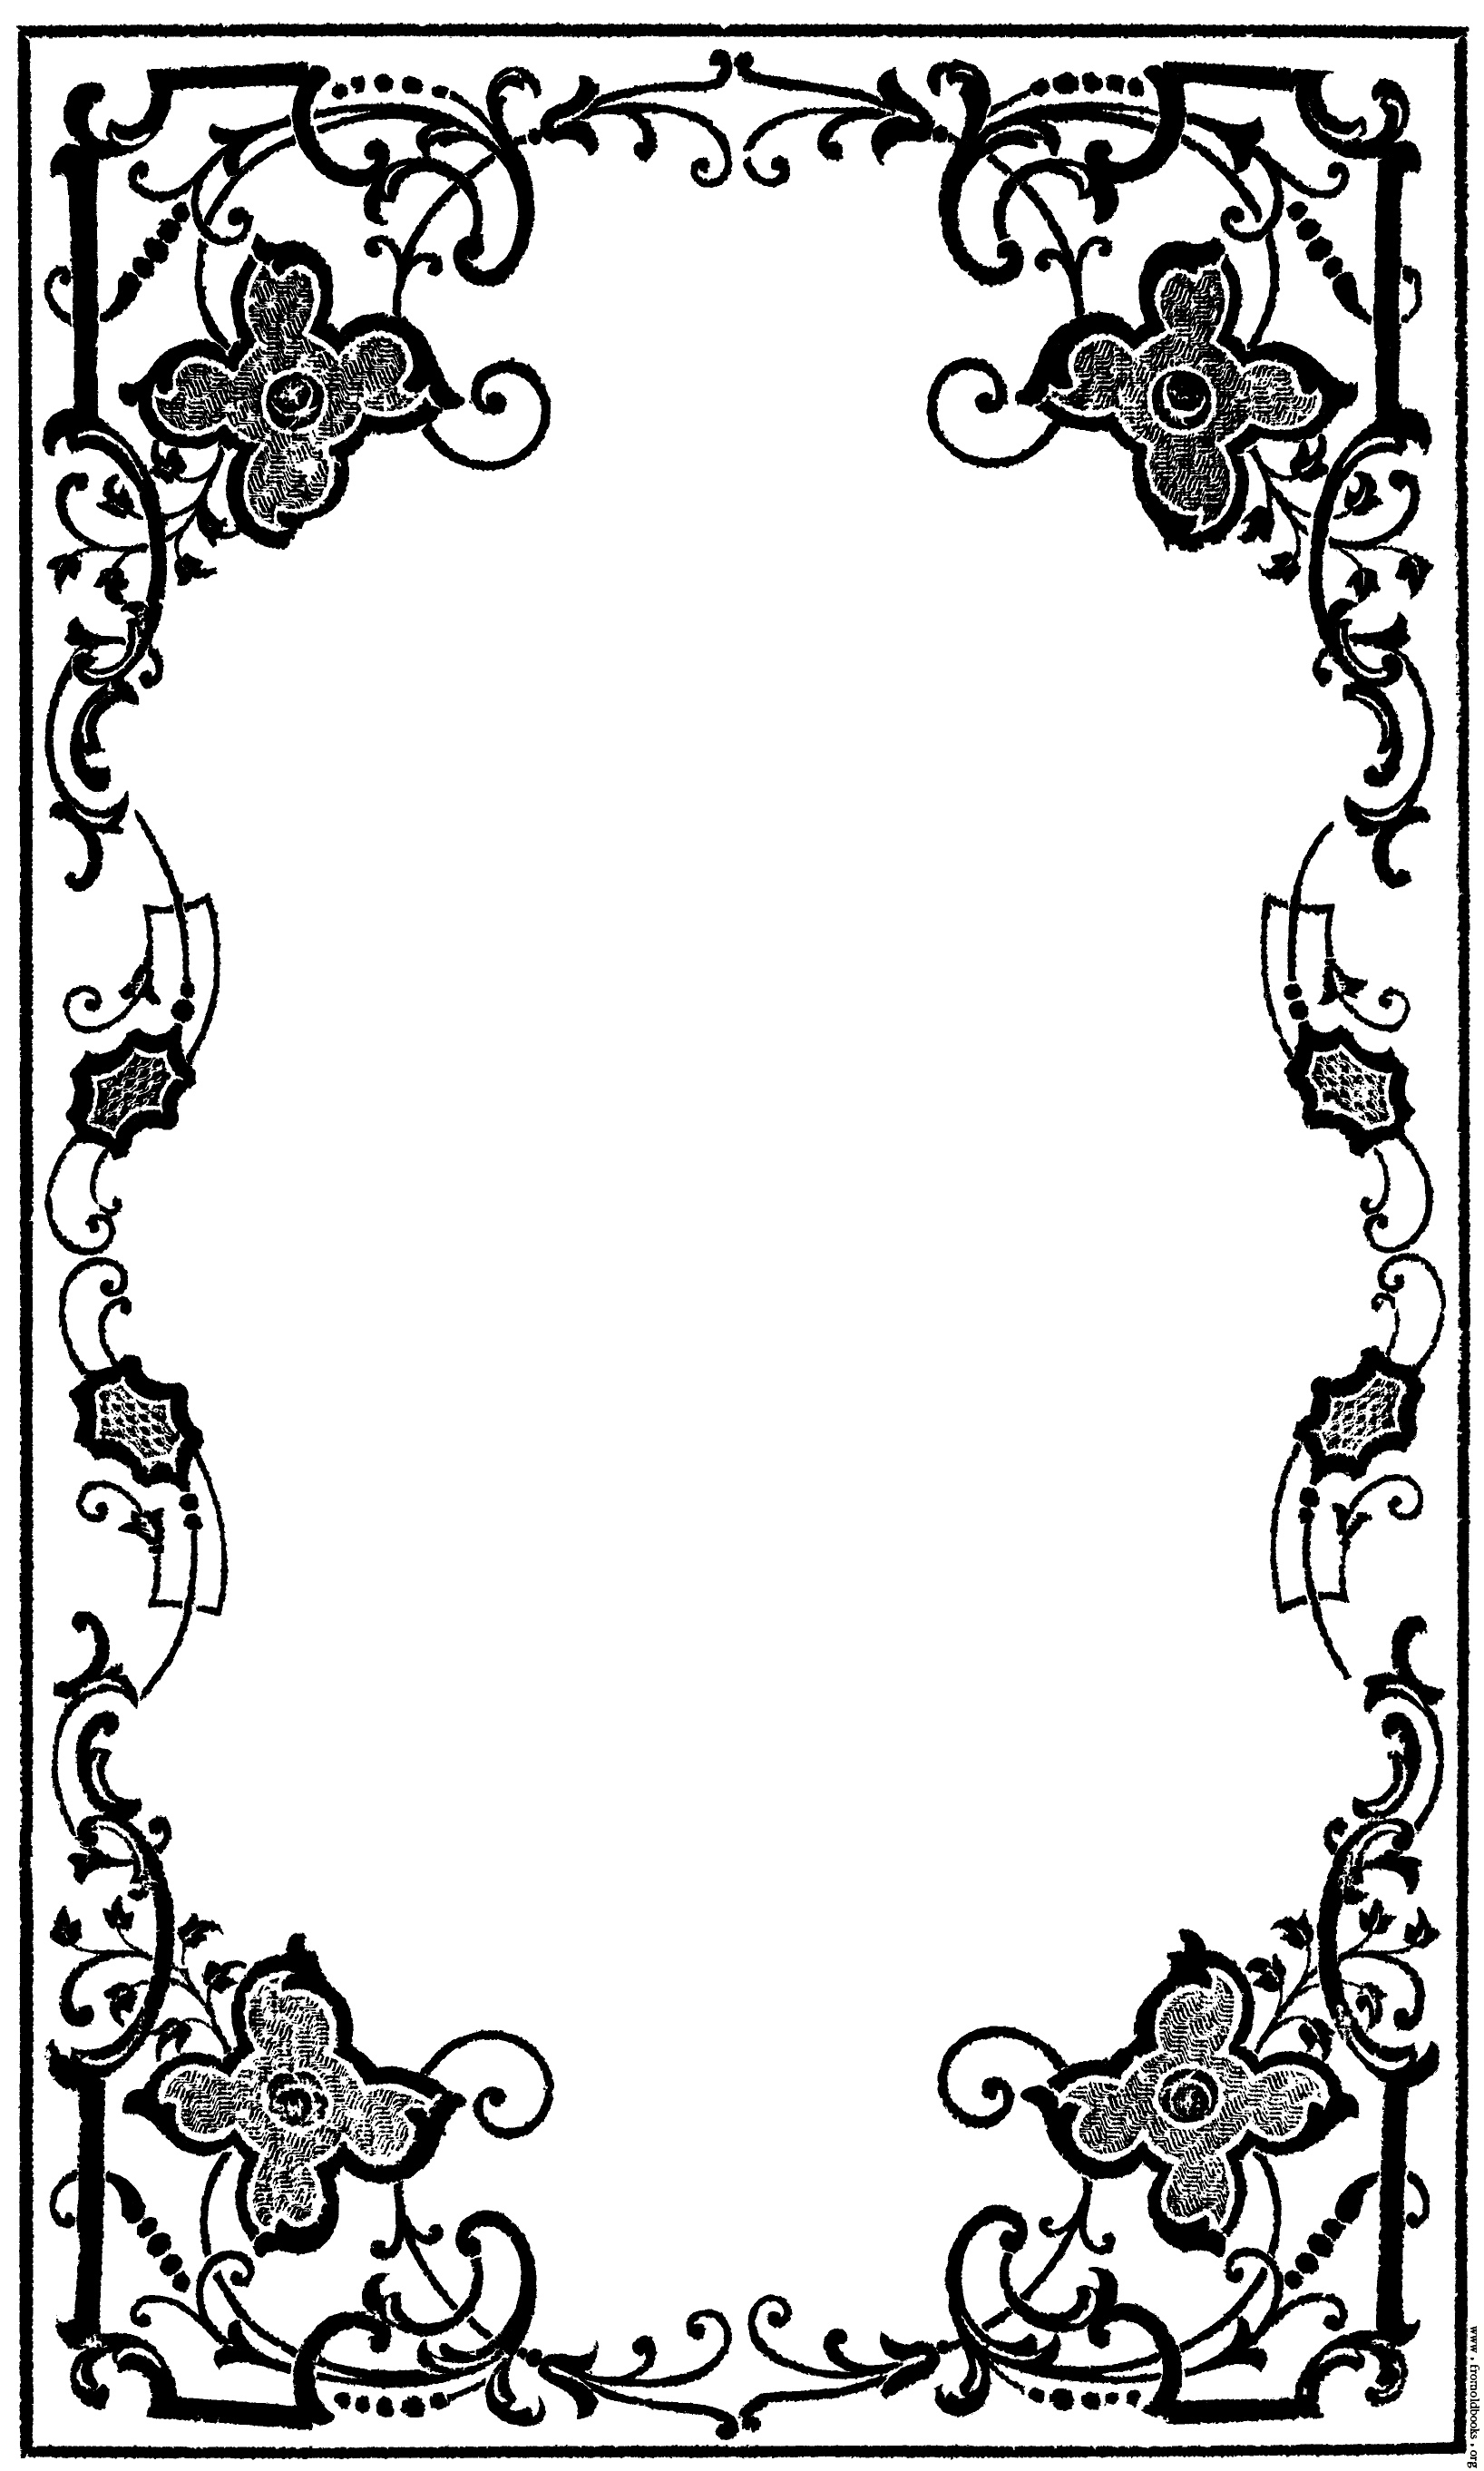 cover page borders designs clipart best designs search results items matching borders results page 1